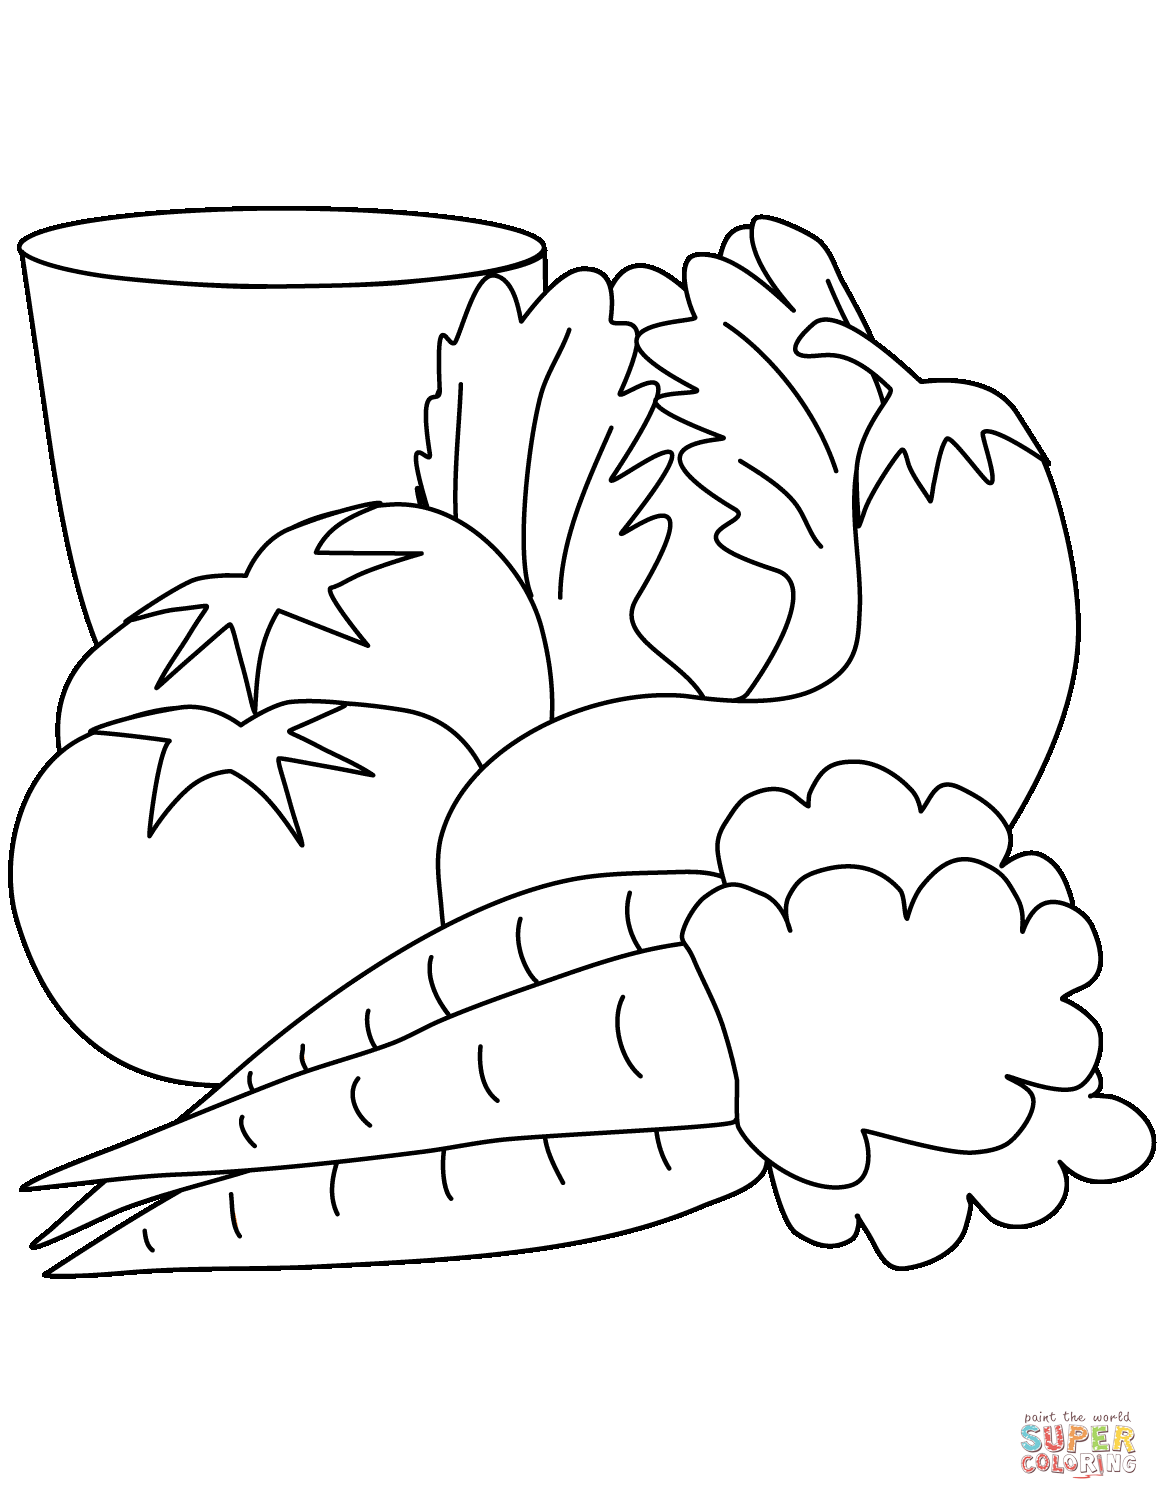 Carrots Tomatoes Eggplant And Salad Coloring Page